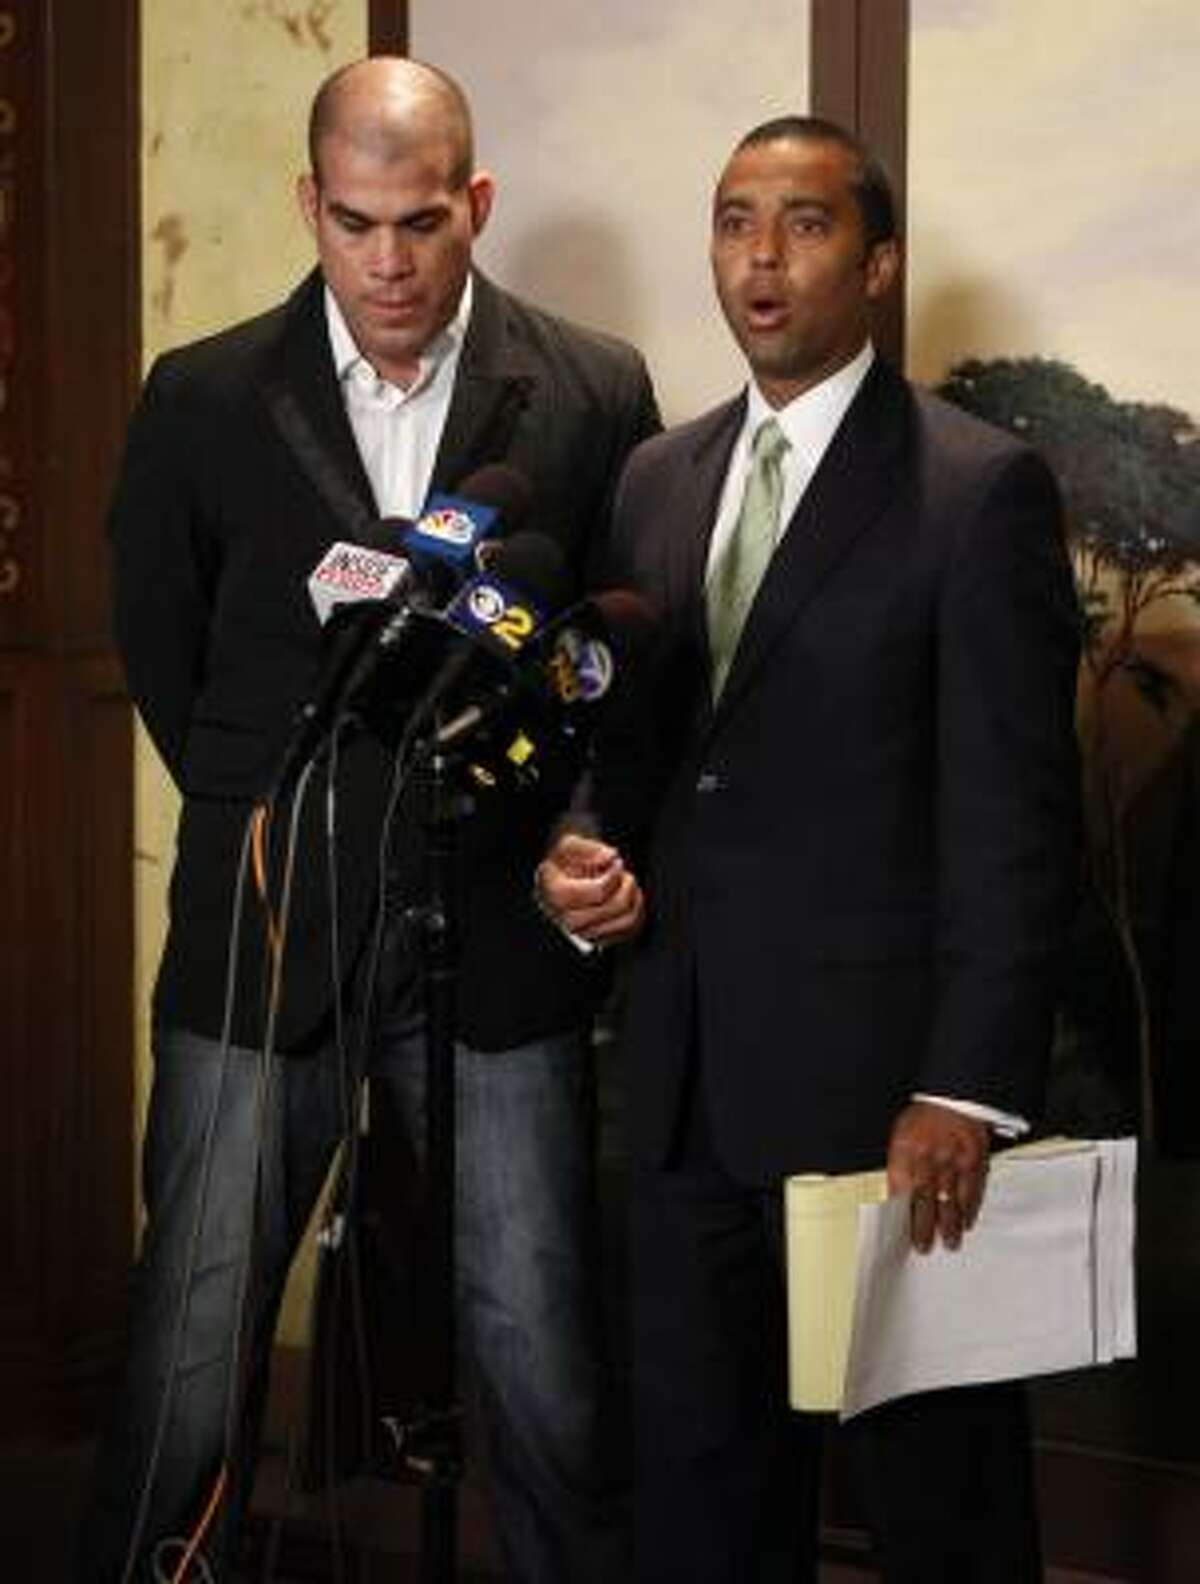 Former Ultimate Fighting champion Tito Ortiz, left, listens as his attorney Chip Matthews, right speaks to the media Monday, April 26, 2010, after Ortiz was released from jail. Matthews said the Ortiz found drugs in his home Monday morning, leading to the confrontation that ended with Ortiz's arrest.